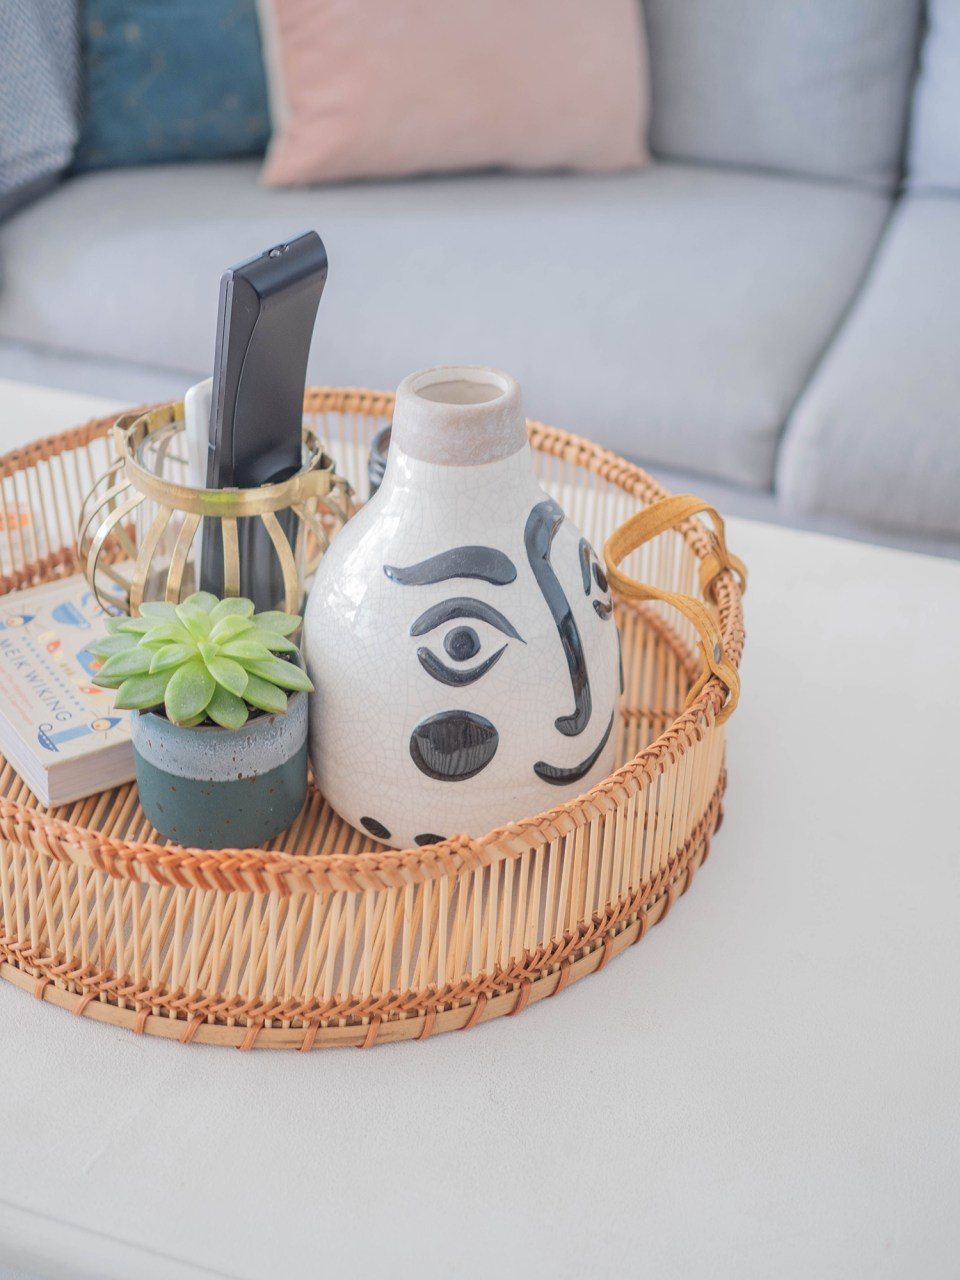 wicker tray on coffee table with abstract vase